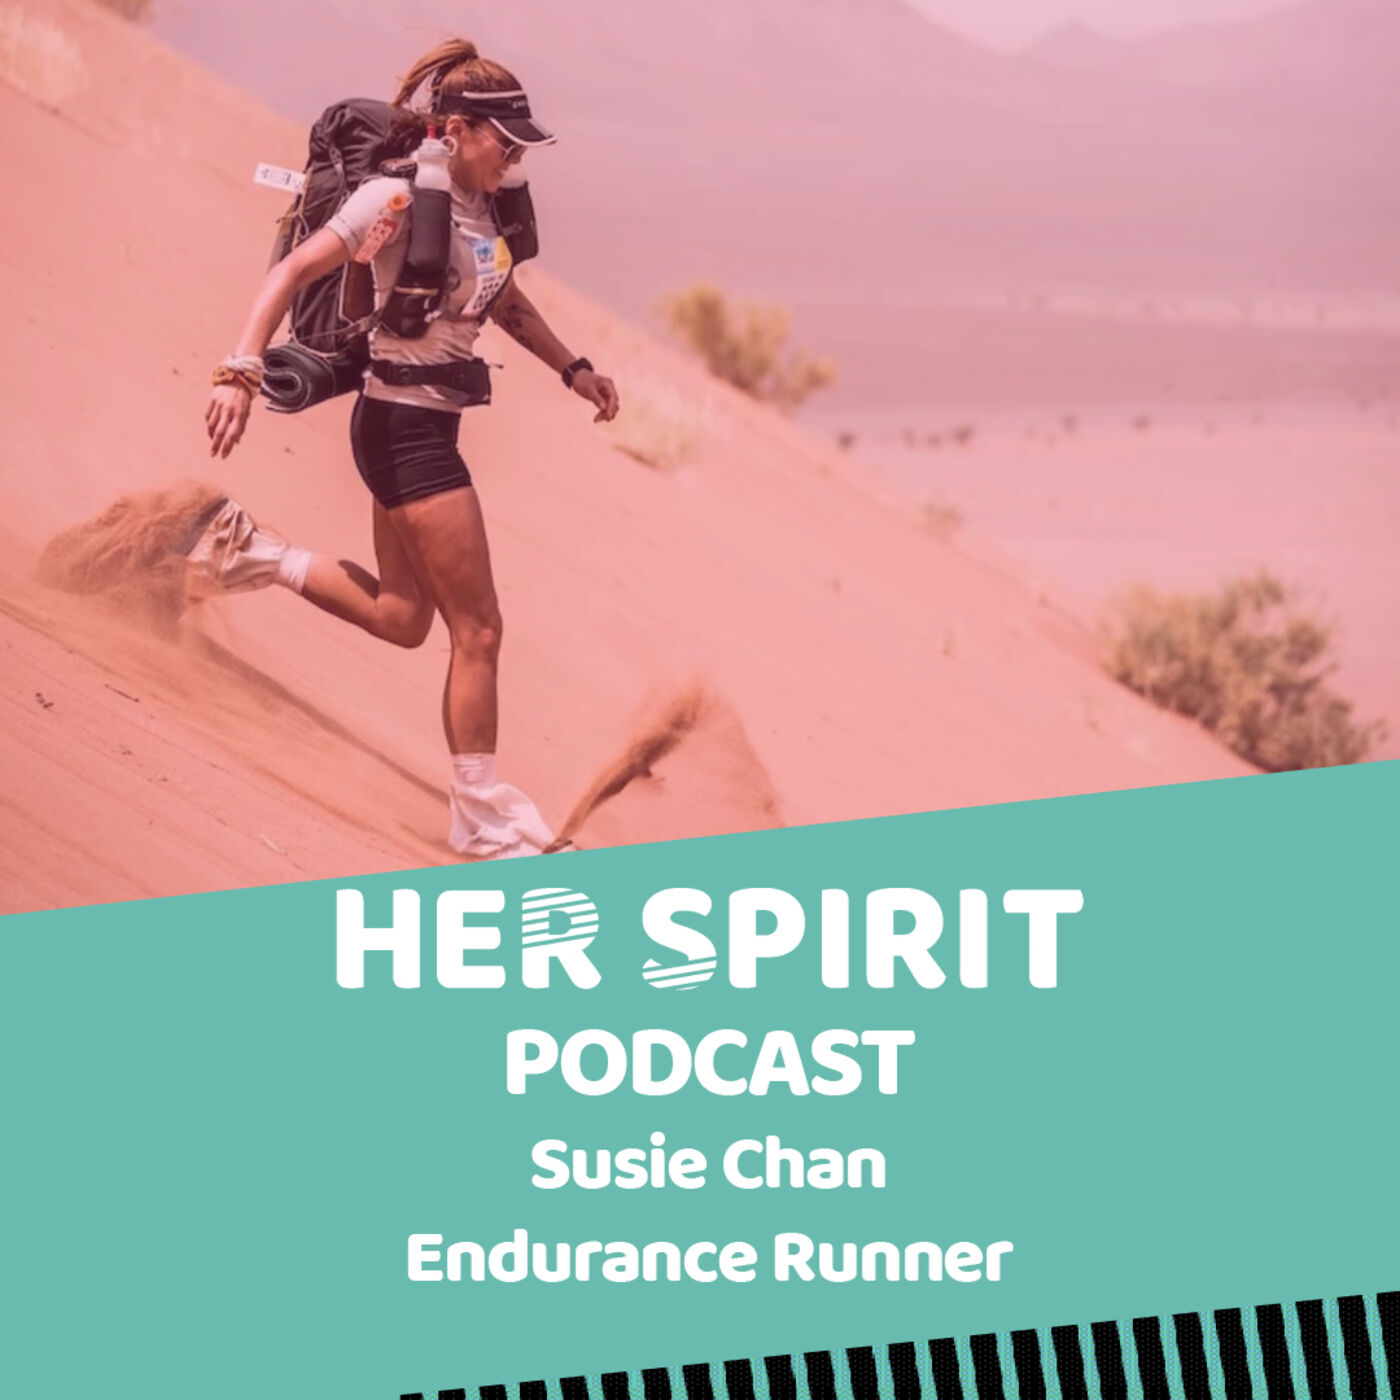 Endurance runner Susie Chan talks to Annie and Louise about her love of running, overcoming thyroid Cancer and her advice for every woman to have her best year yet.